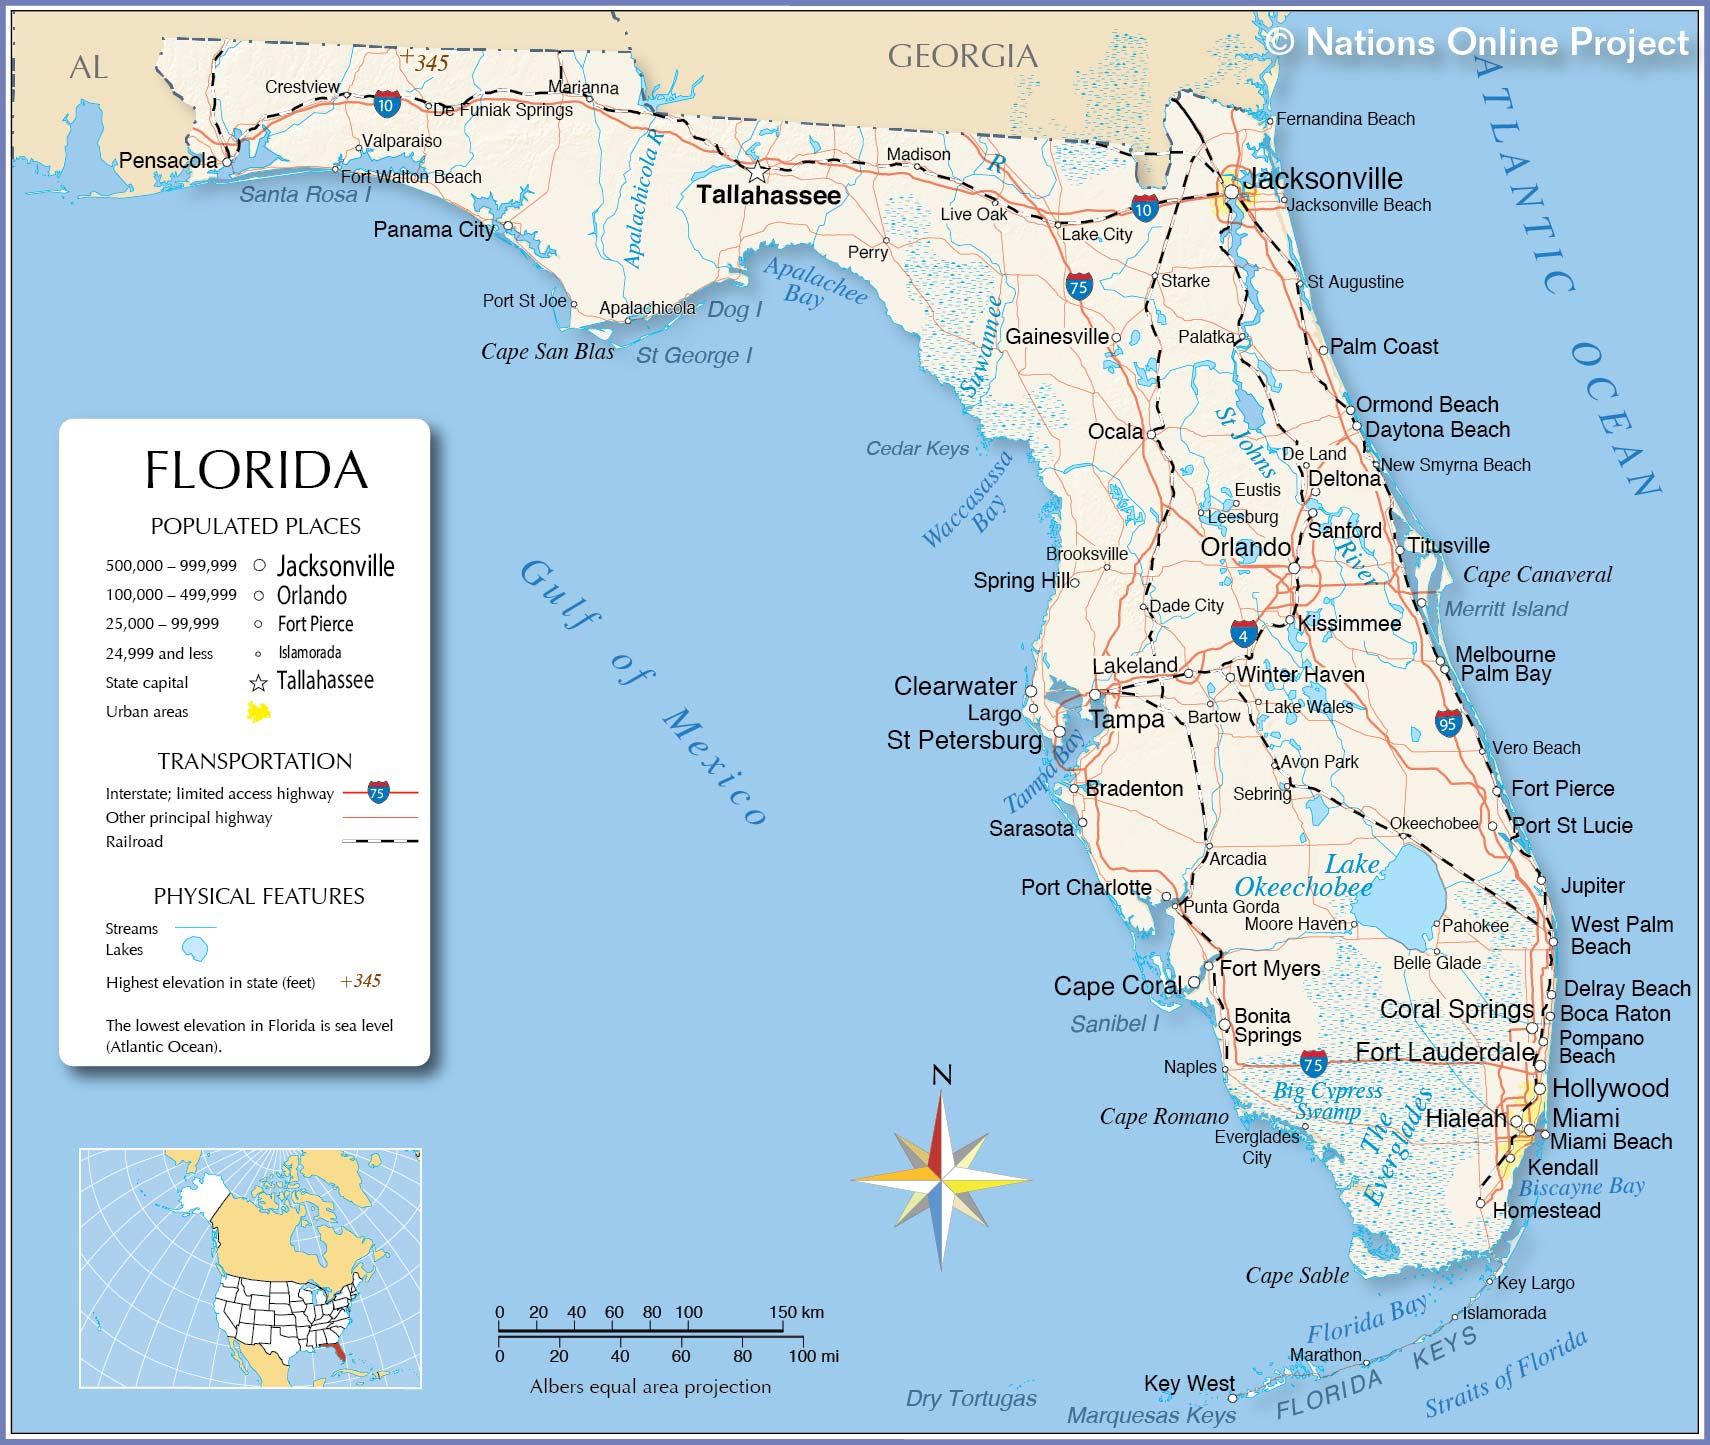 Reference Maps Of Florida, Usa - Nations Online Project - Gulf Coast Cities In Florida Map